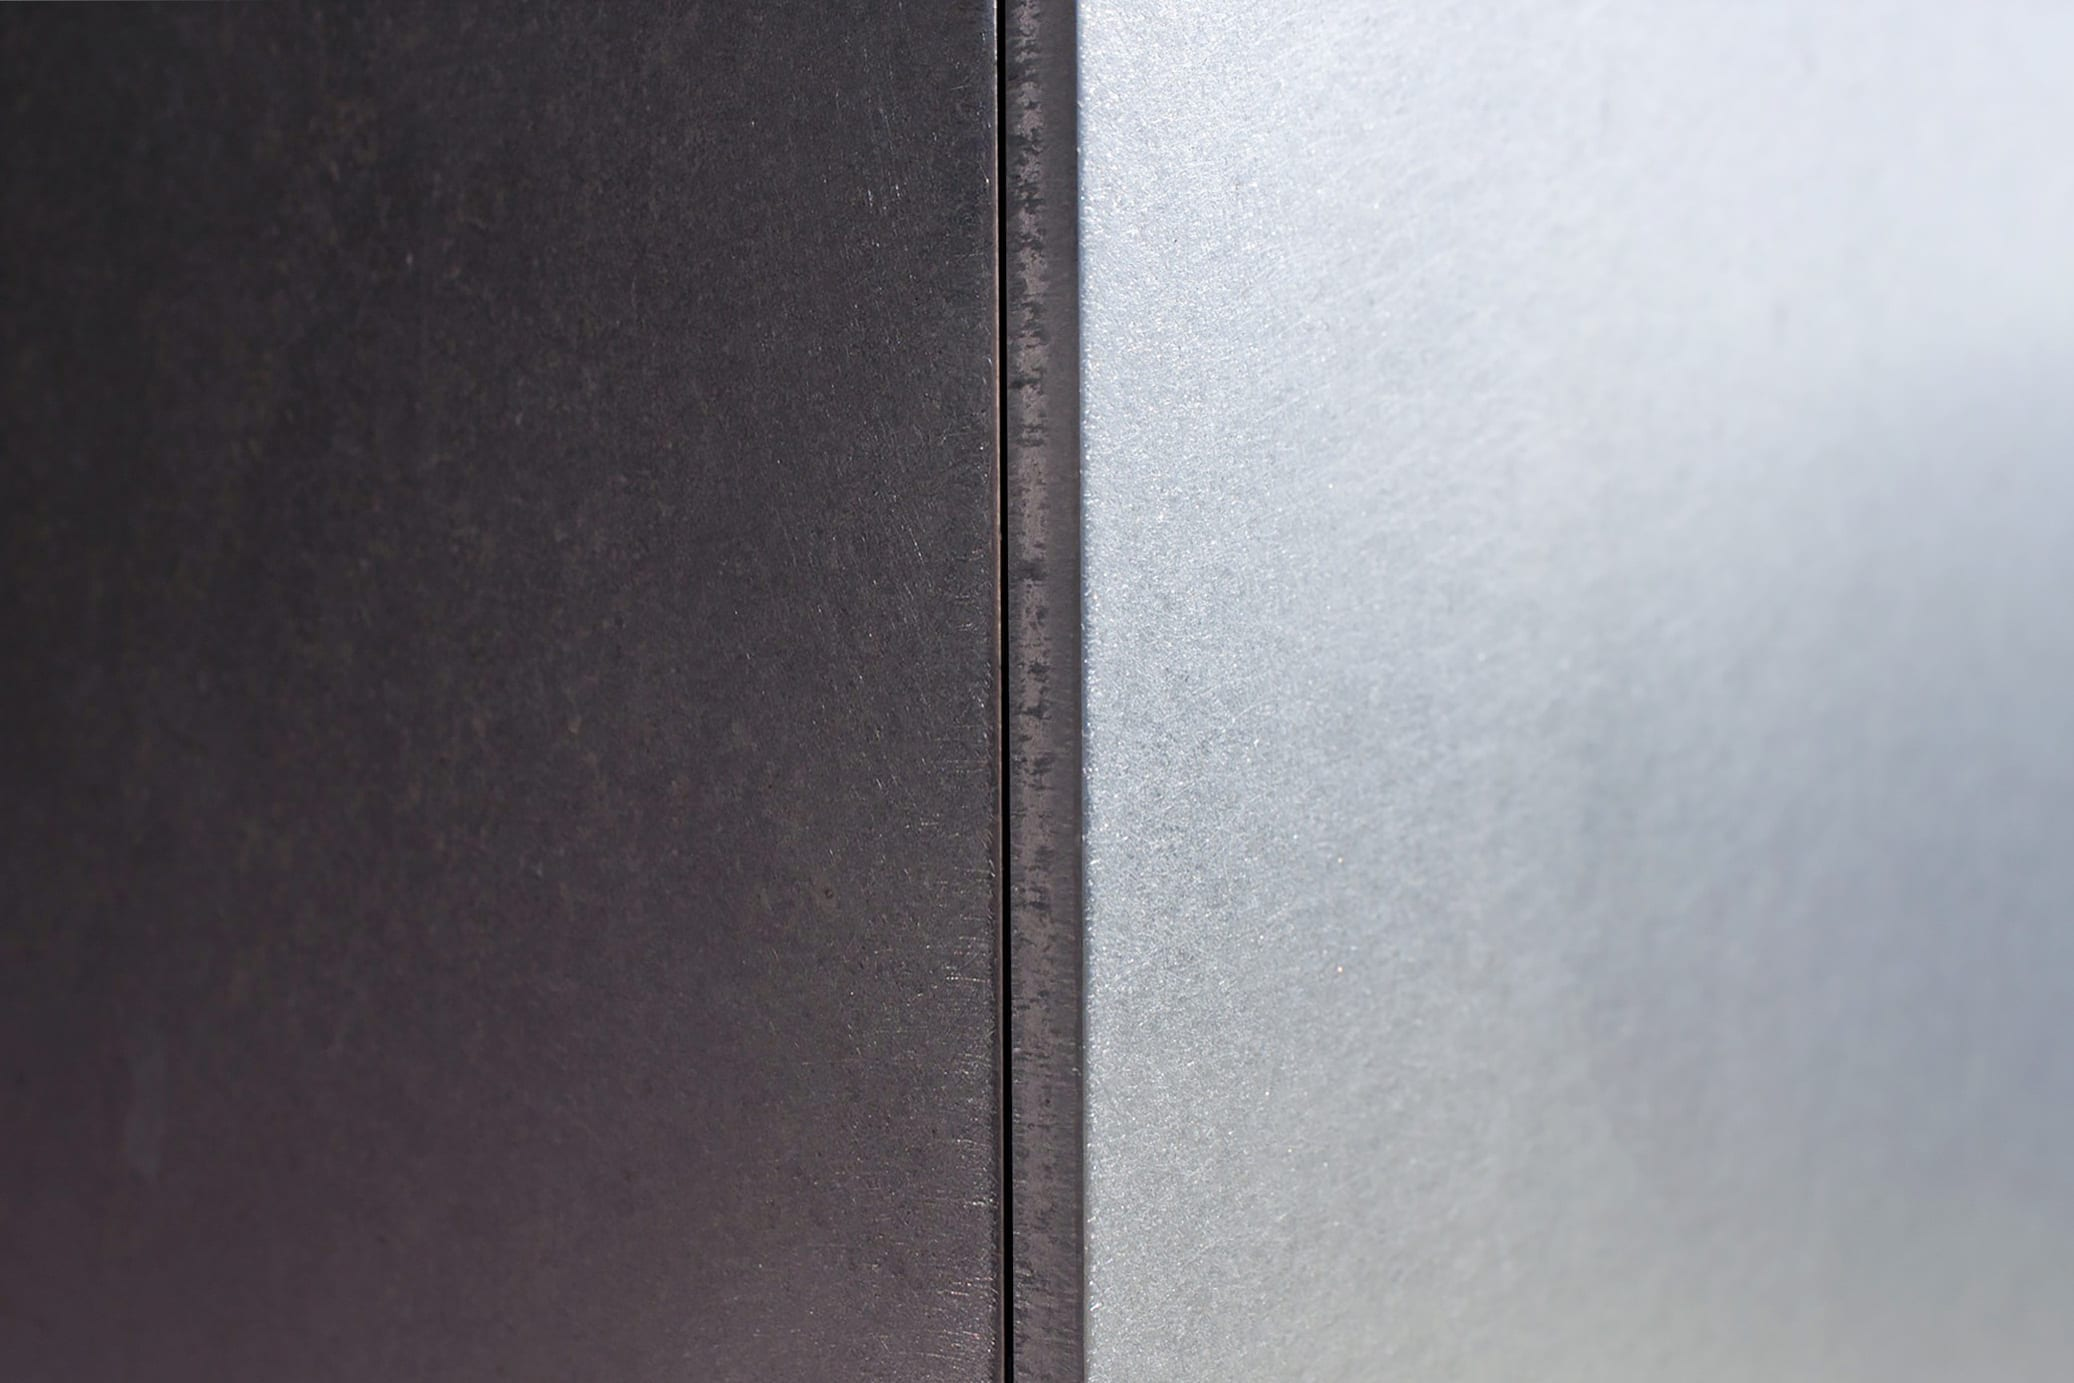 Detail of the Angel Hair® surface used on the stainless steel fins.